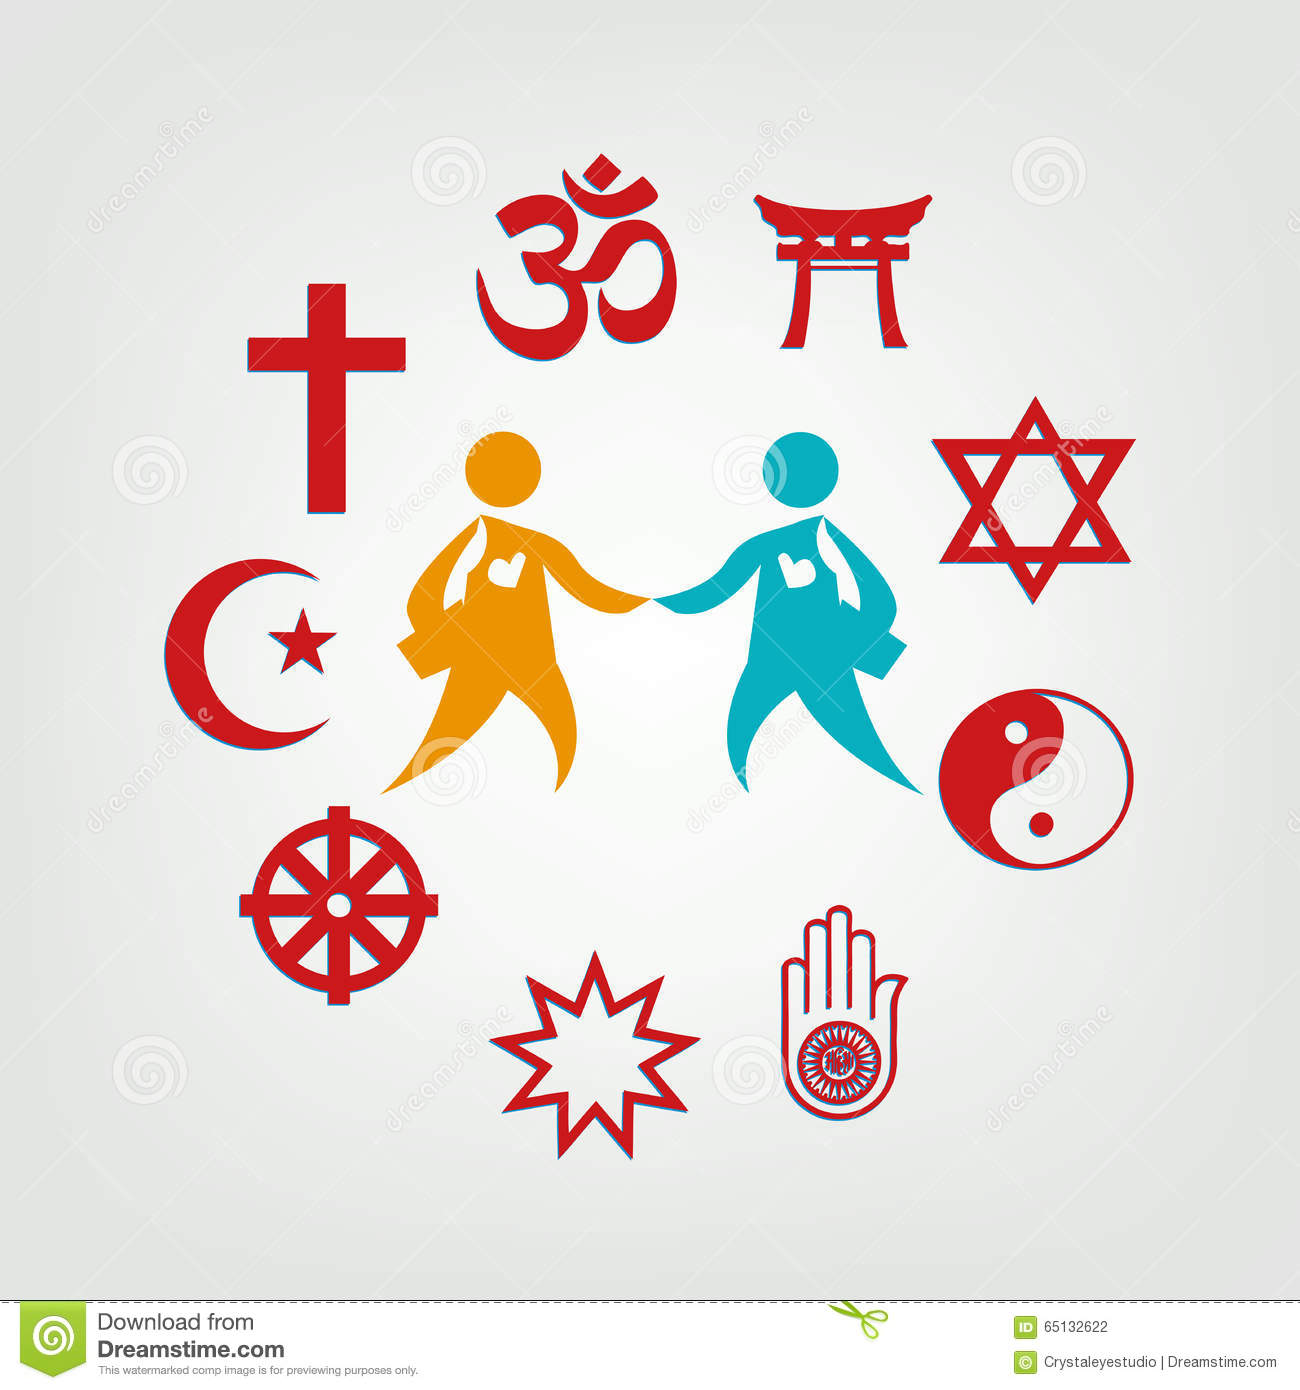 essay on respect to all religions